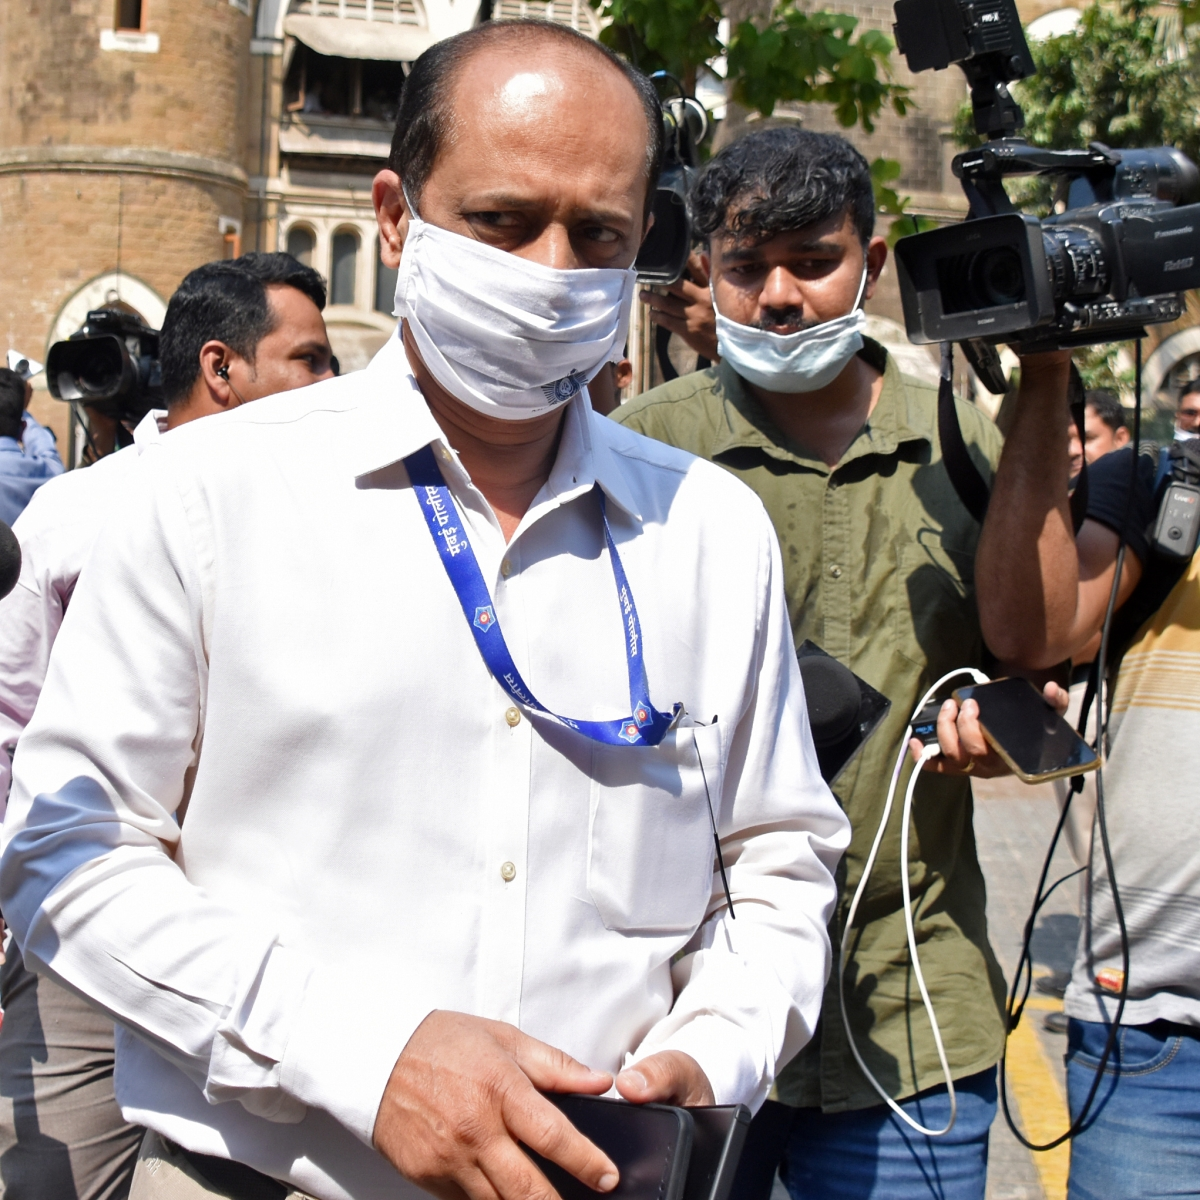 Antilia bomb scare: NIA to present arrested Mumbai police officer Sachin Vaze before court today - Here's what we know so far